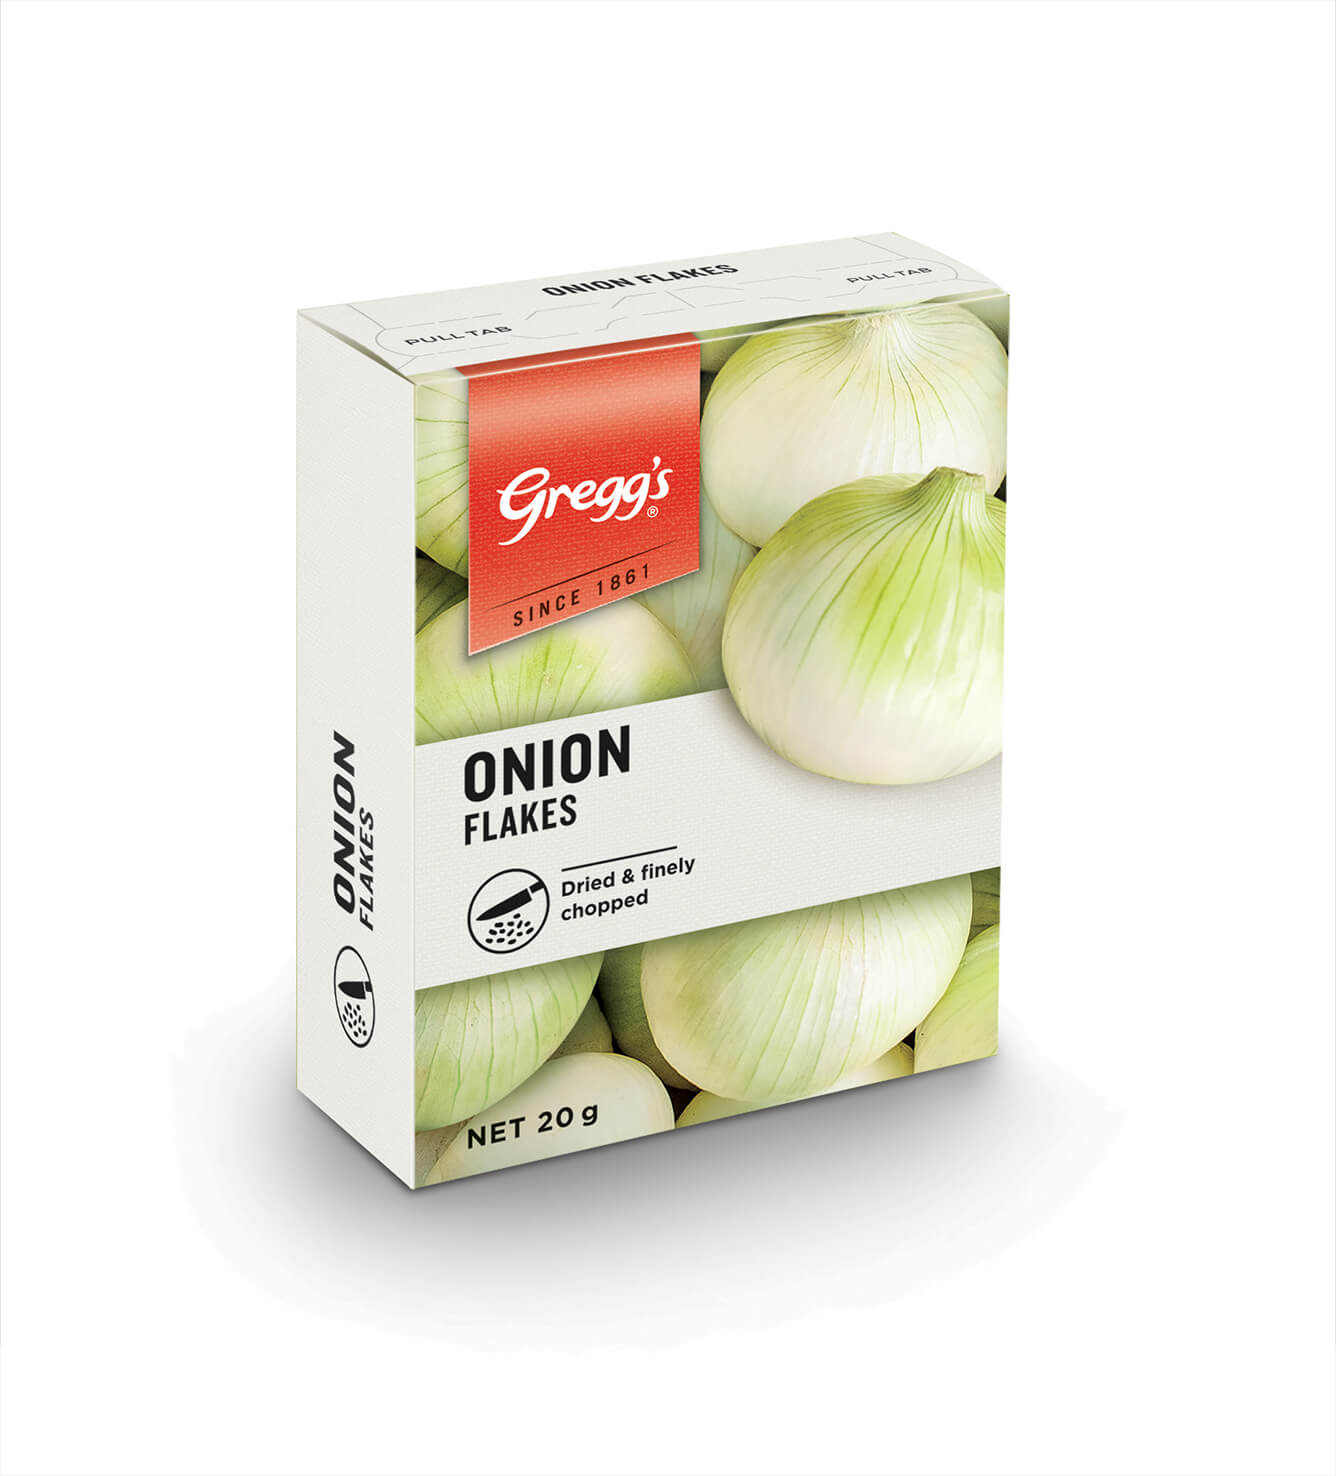 Onion Flakes image